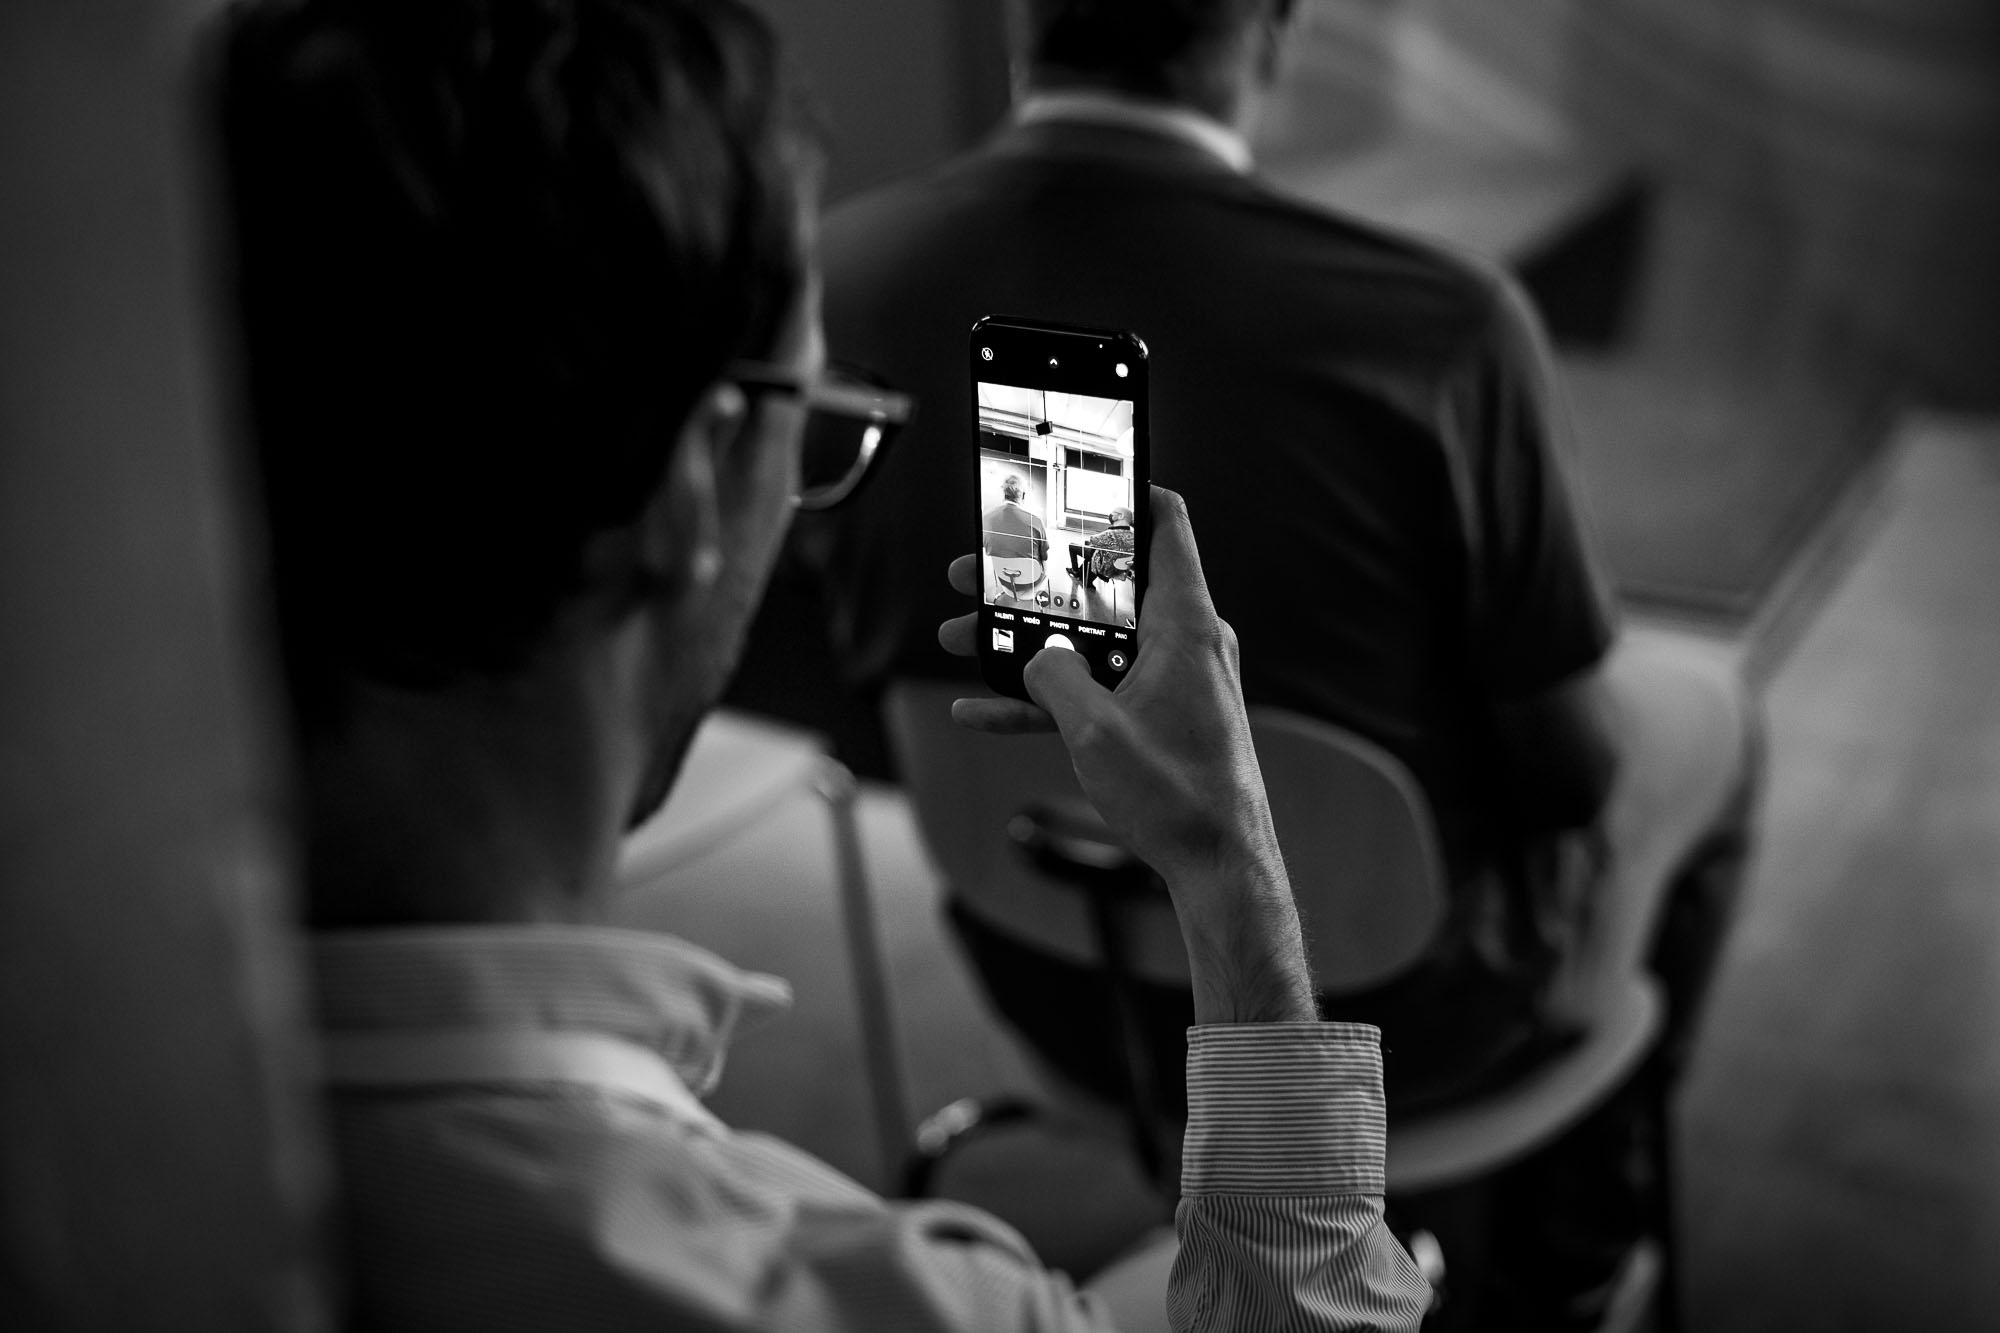 An attendee taking a photo with his smartphone